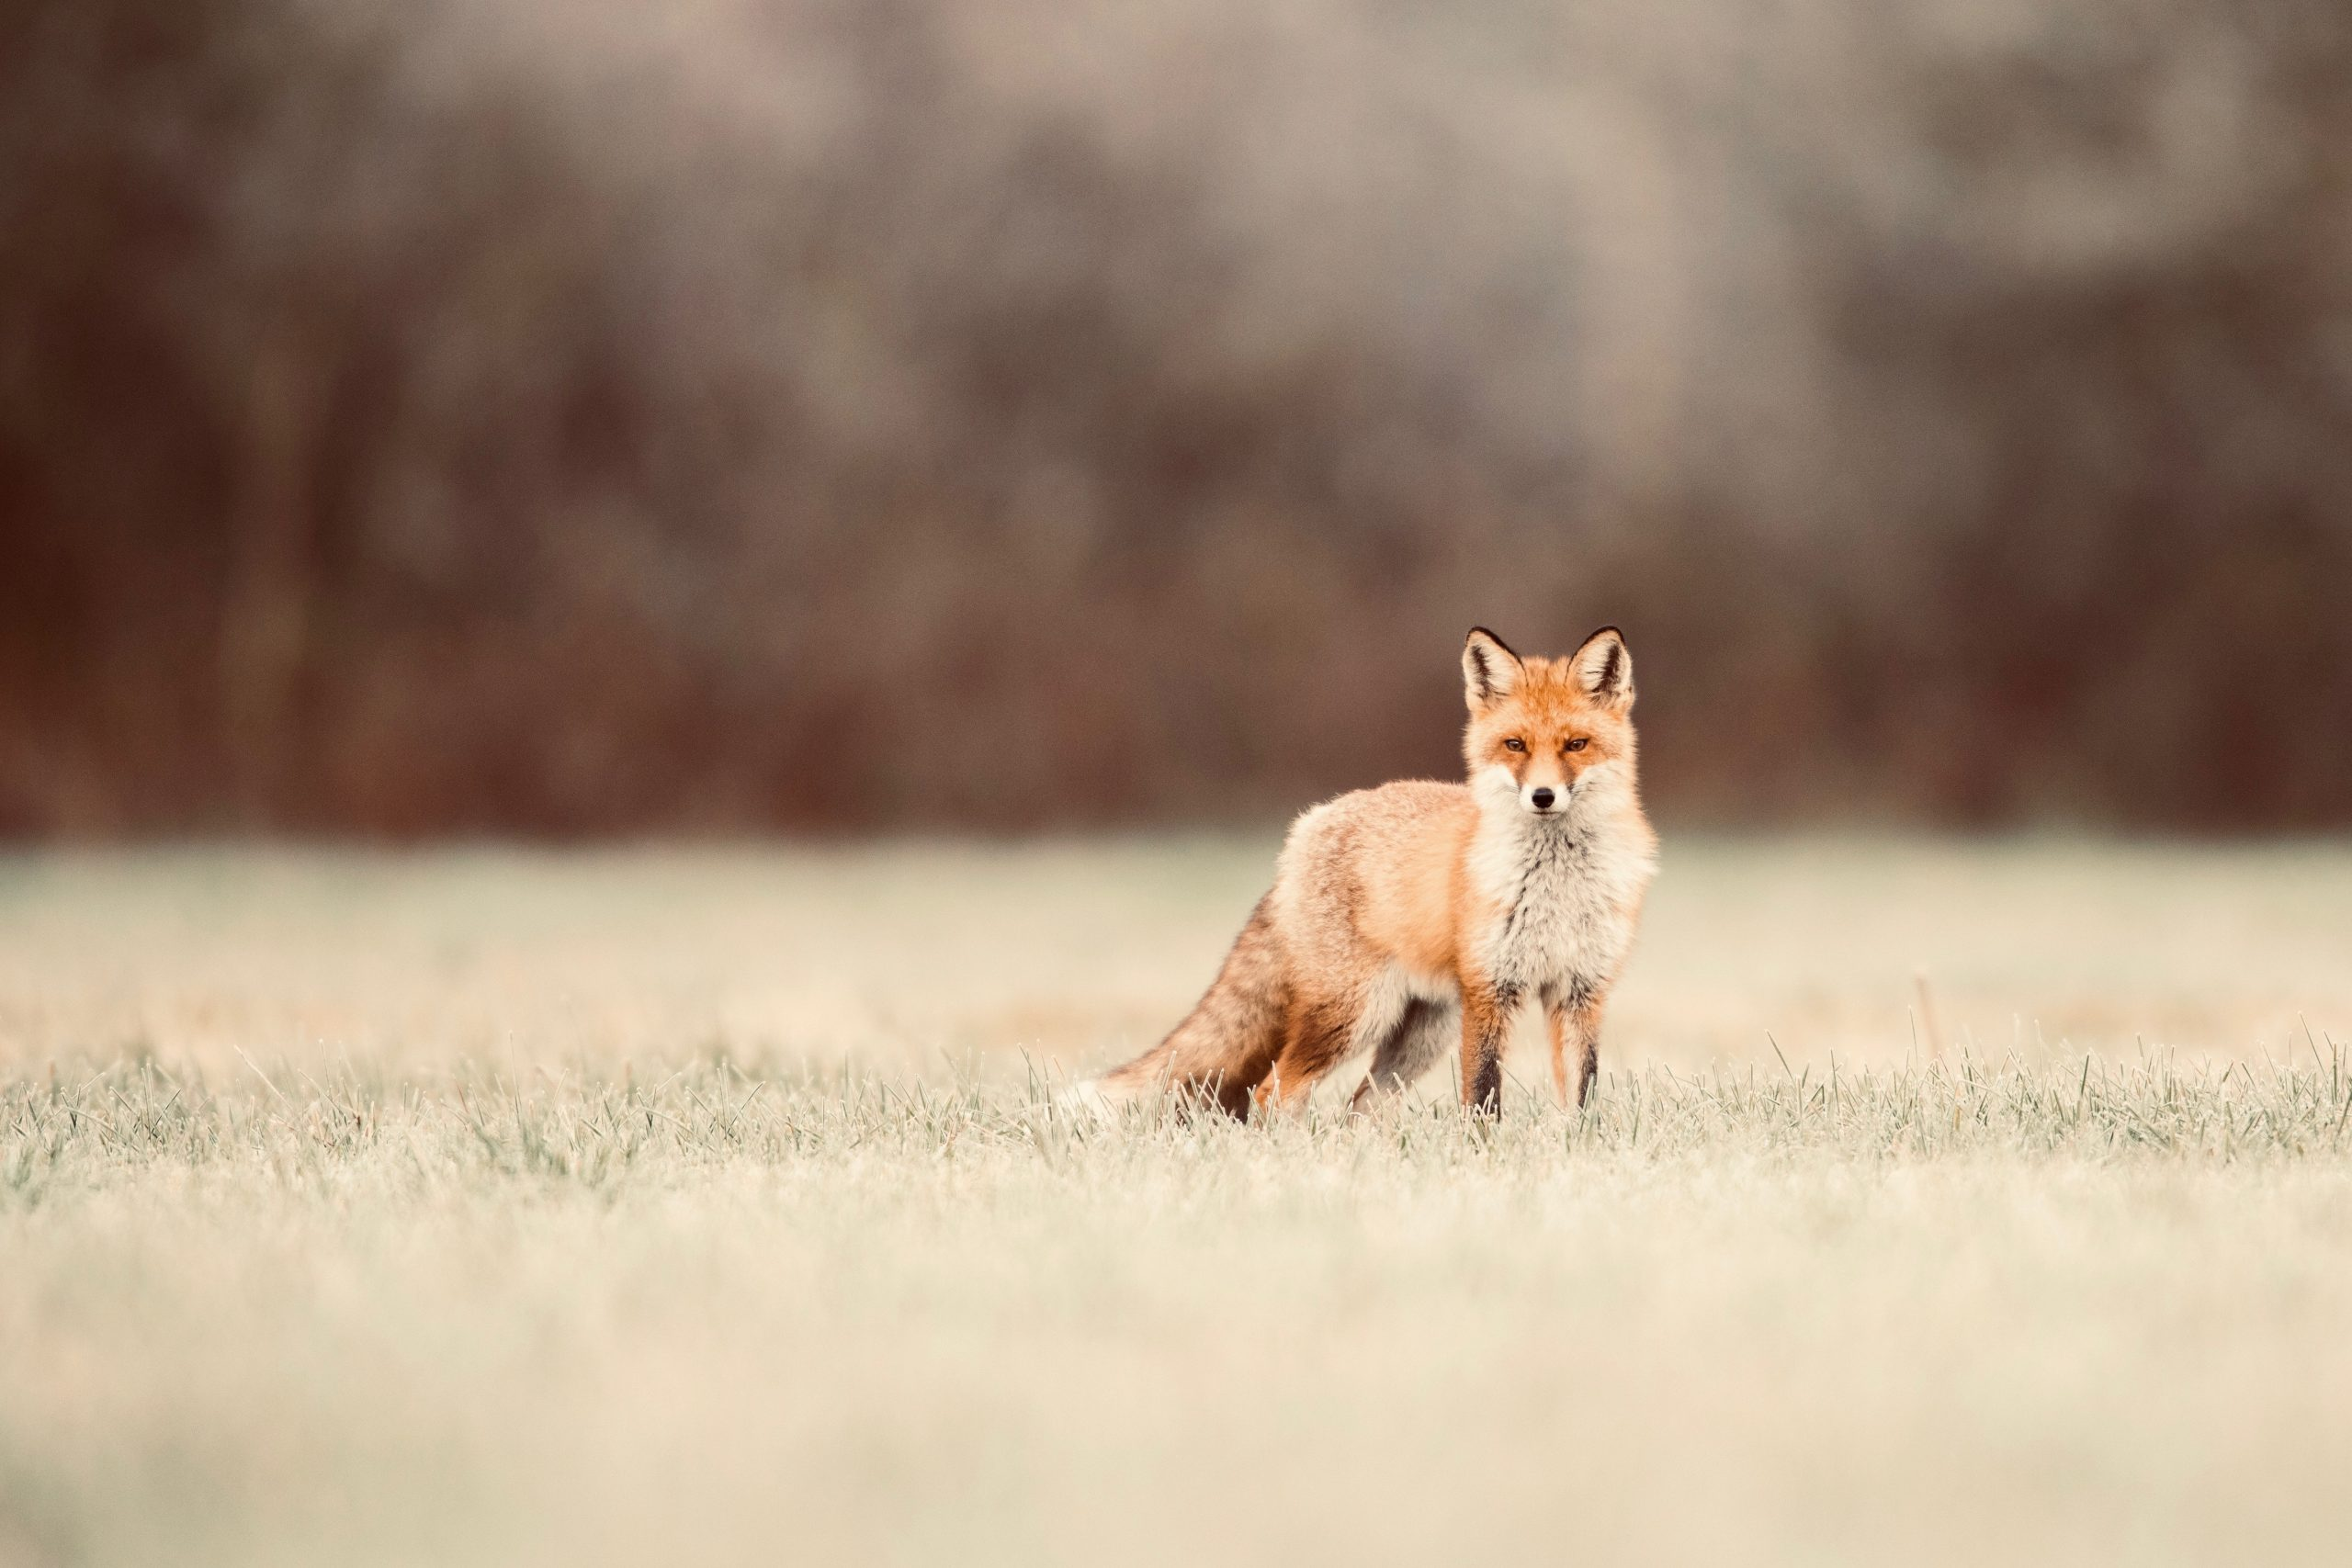 Fox scents are so potent they can force a building evacuation. Understanding them may save our wildlife   The conversation